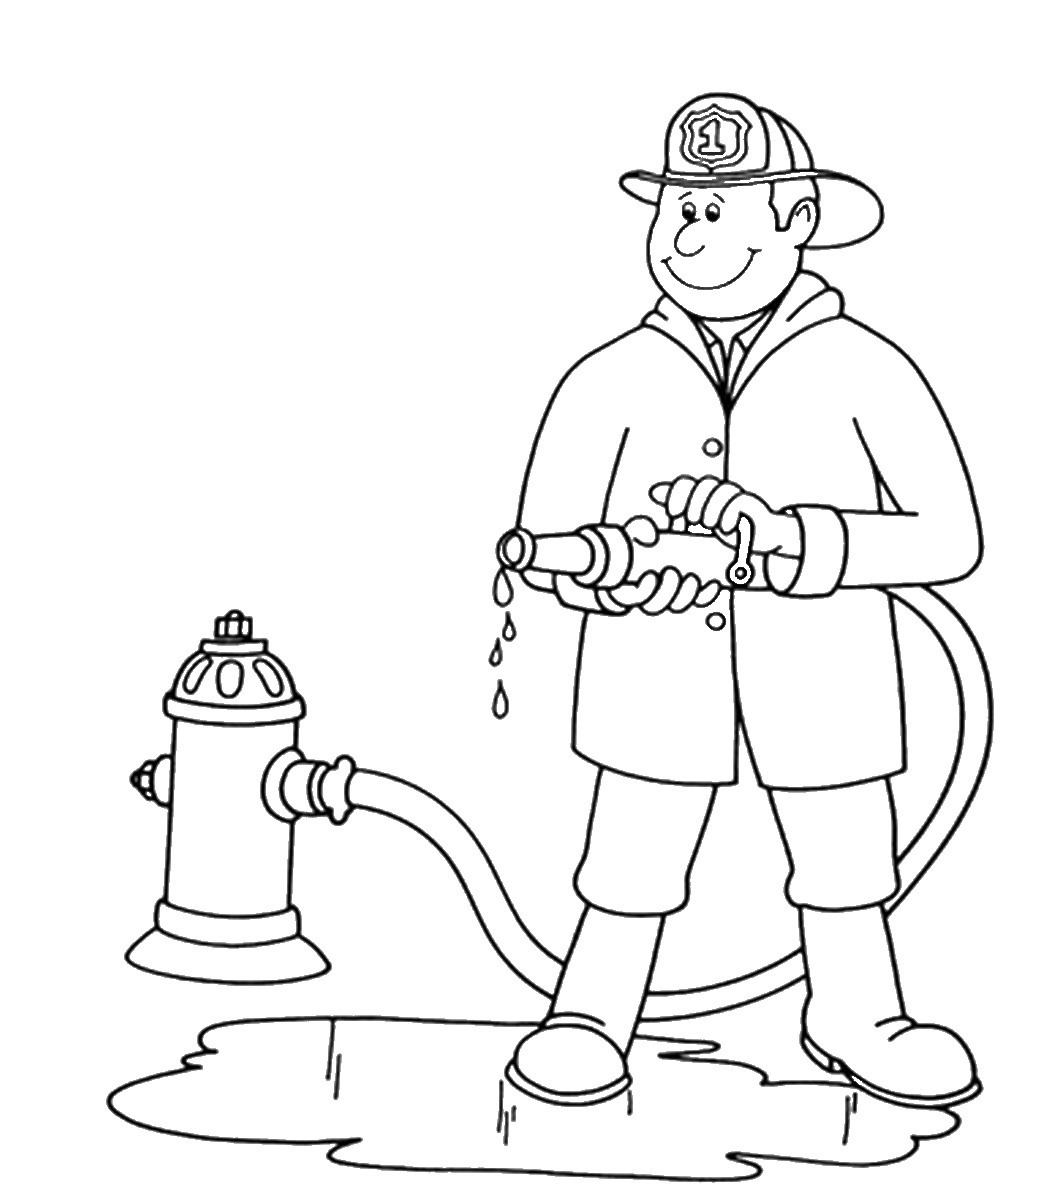 free coloring pages of firemen - photo#9